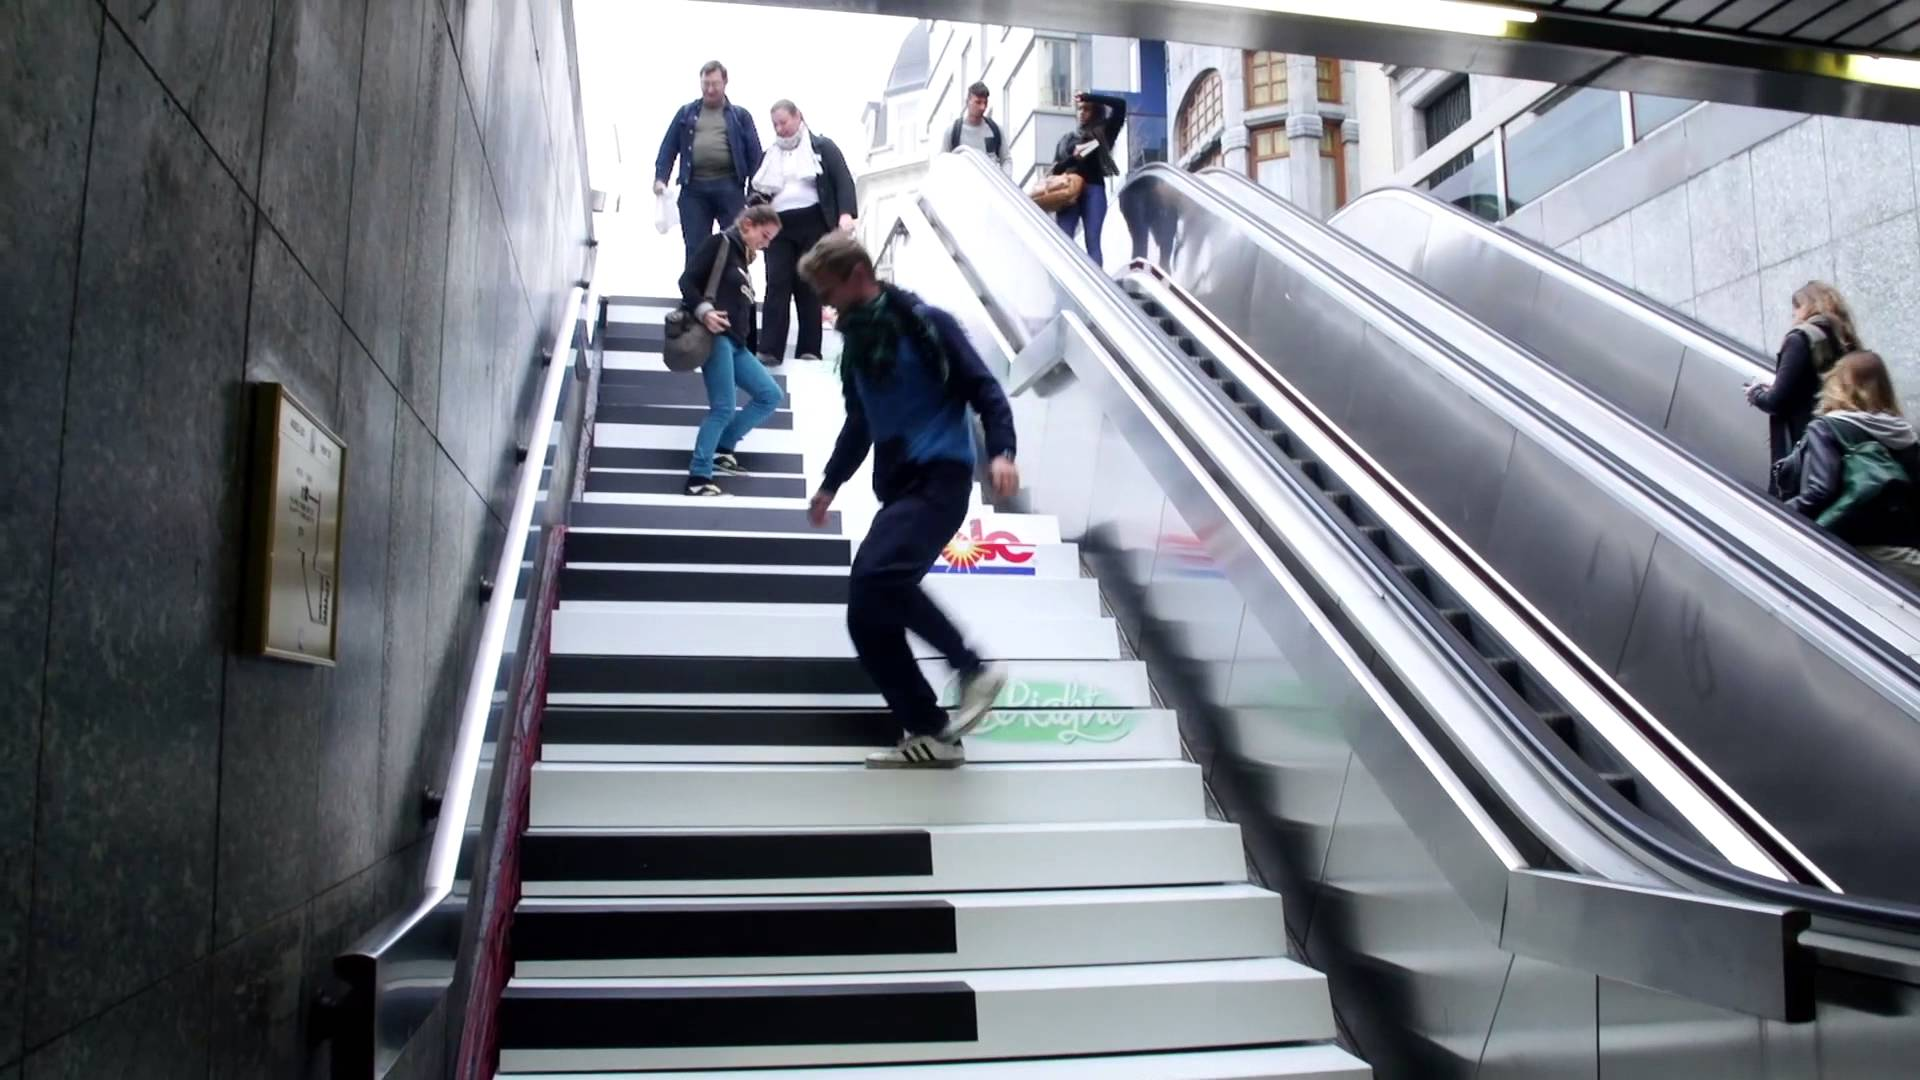 The Fun Theory - Piano Stairs